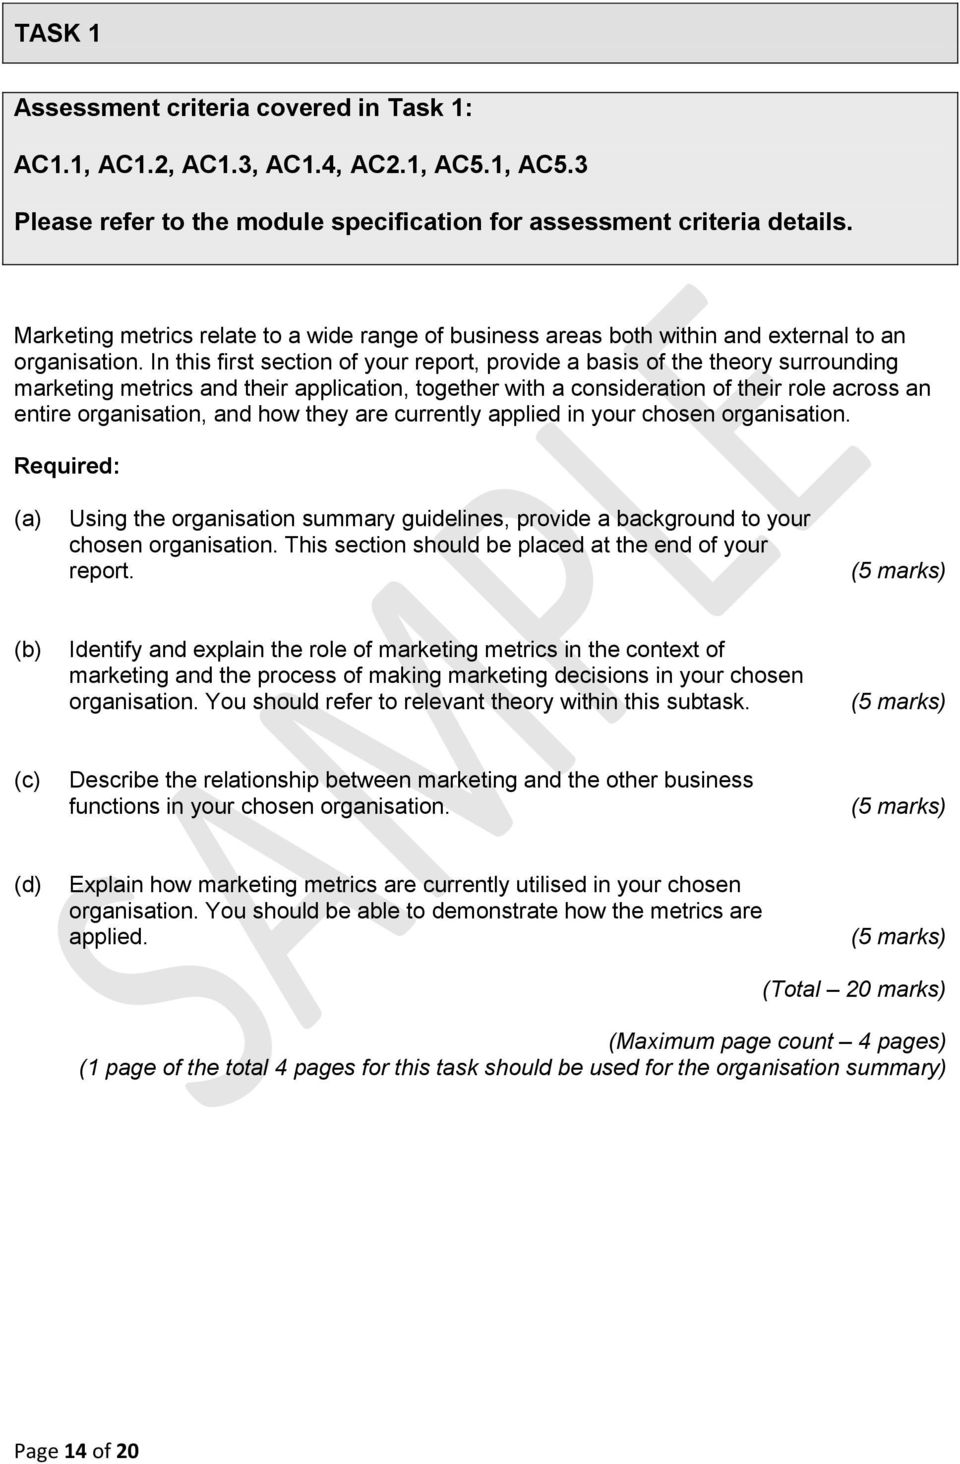 In this first section of your report, provide a basis of the theory surrounding marketing metrics and their application, together with a consideration of their role across an entire organisation, and